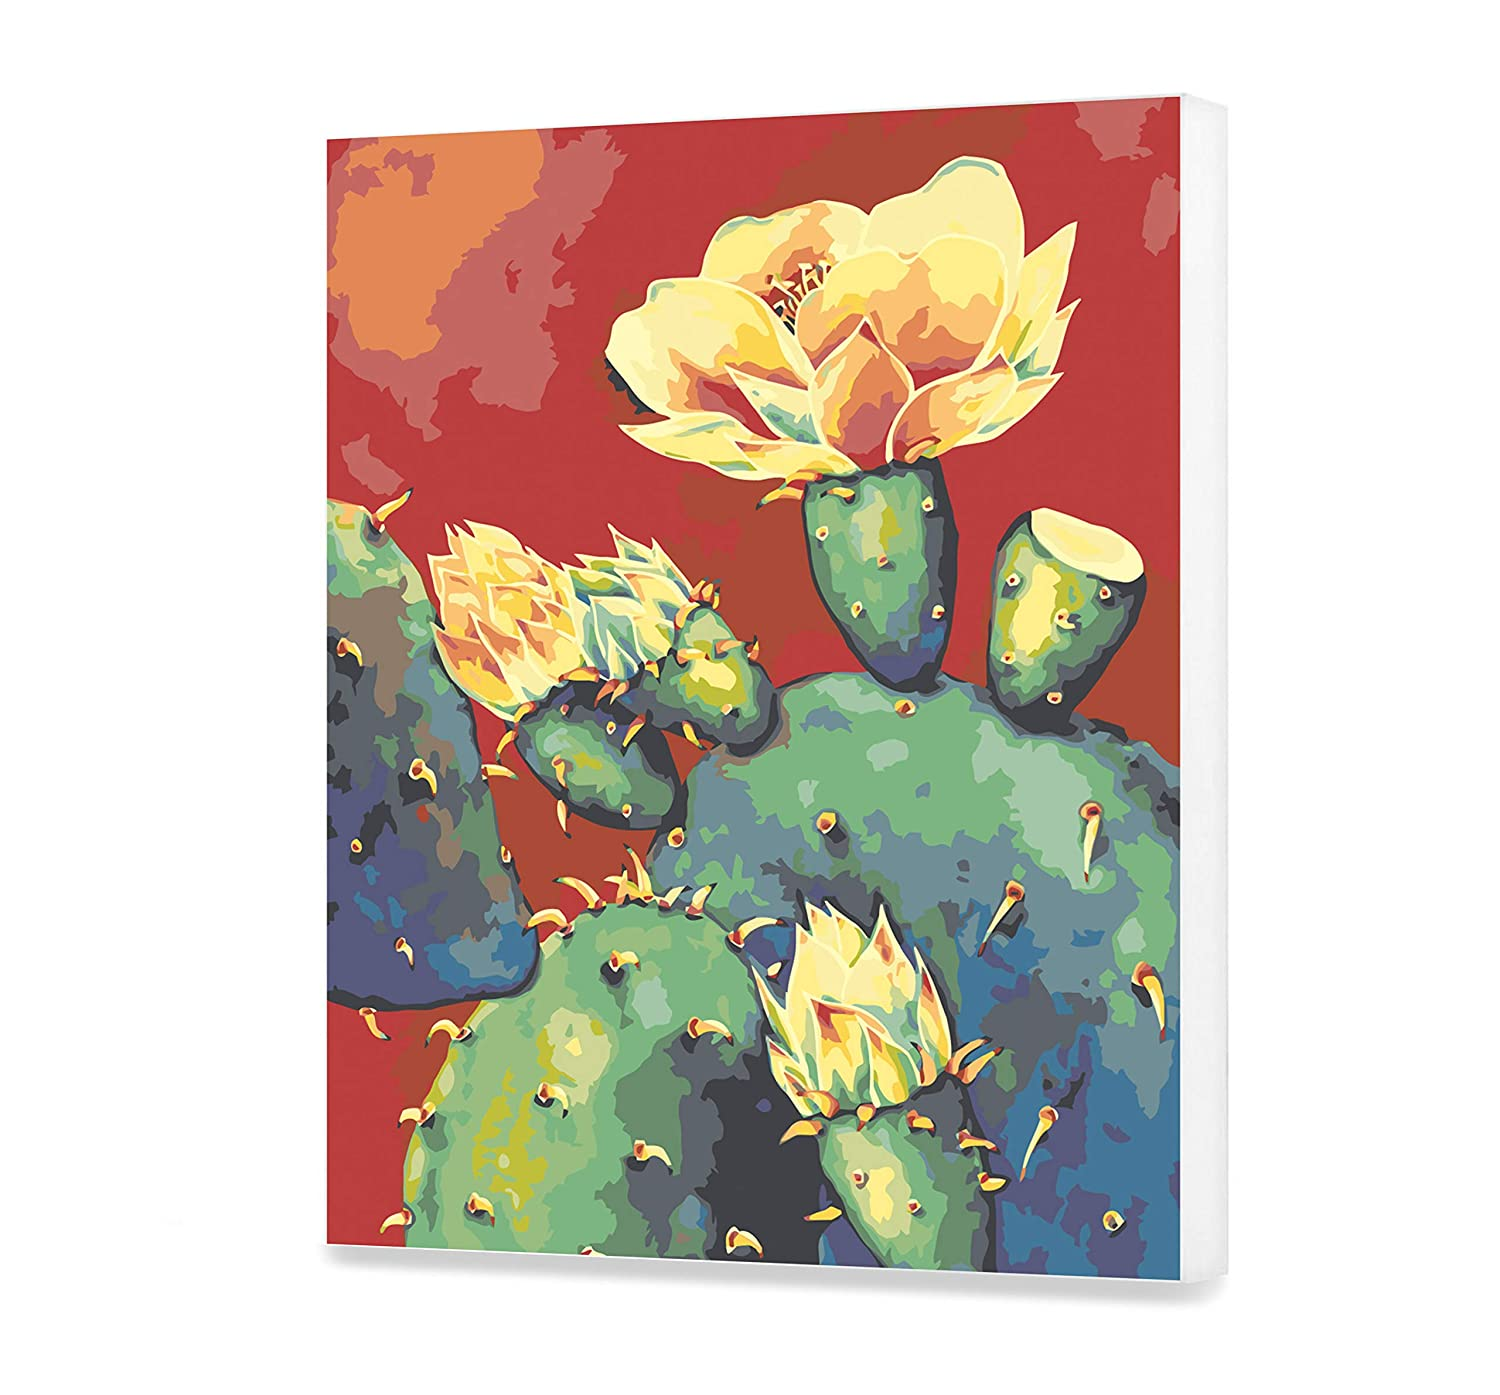 Cactus Acrylic Painting Home Decor Flowers Paint By Numbers Floral Painting Kit Painting By Numbers Adults Plant Painting DIY Kit Painting DIY